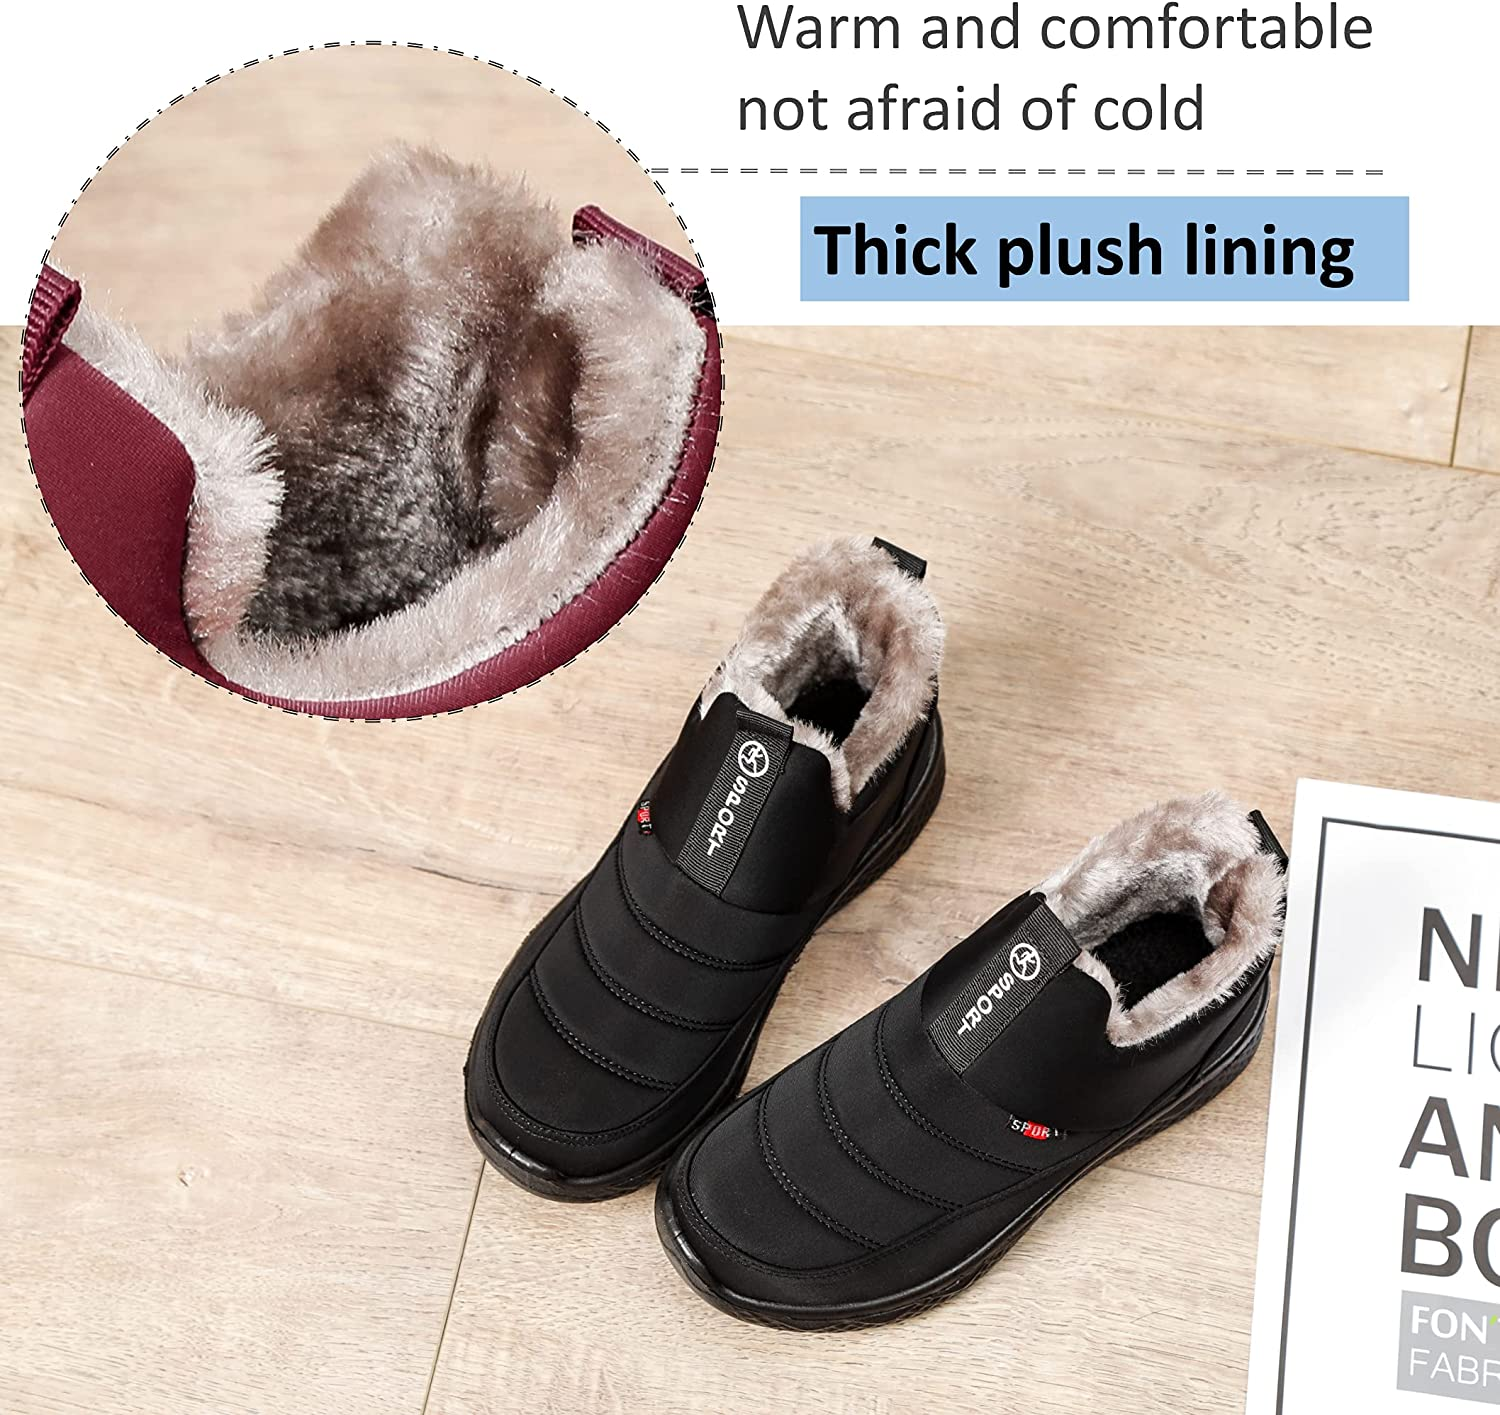 MAIZUN Women's Snow Boots Winter Warm Fur Lined Ankle Boot Waterproof Anti-Slip Outdoor Sports Shoes